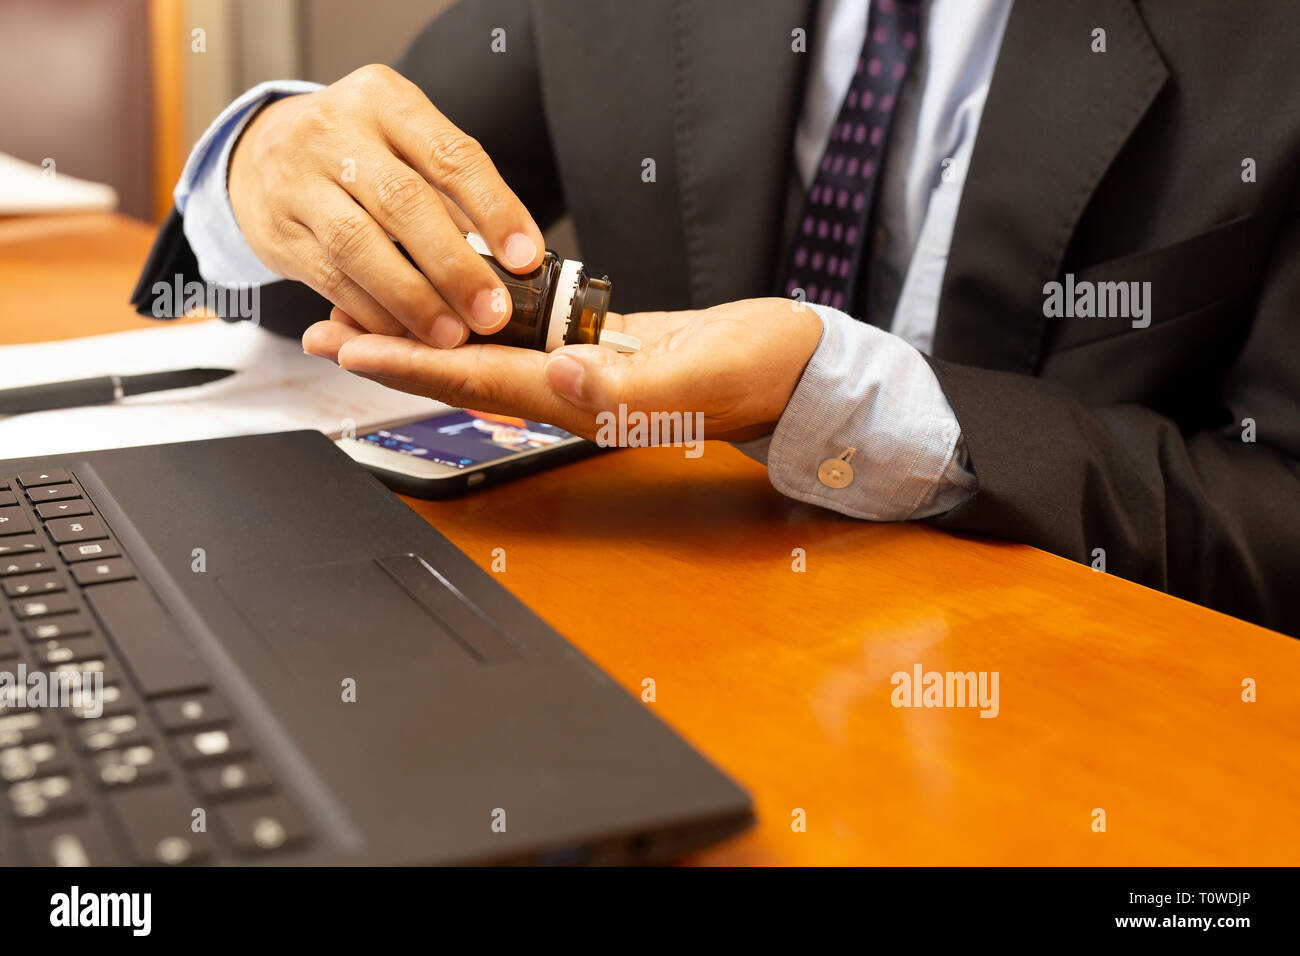 Businessman taking painkiller pill with laptop on wooden table. Stock Photo